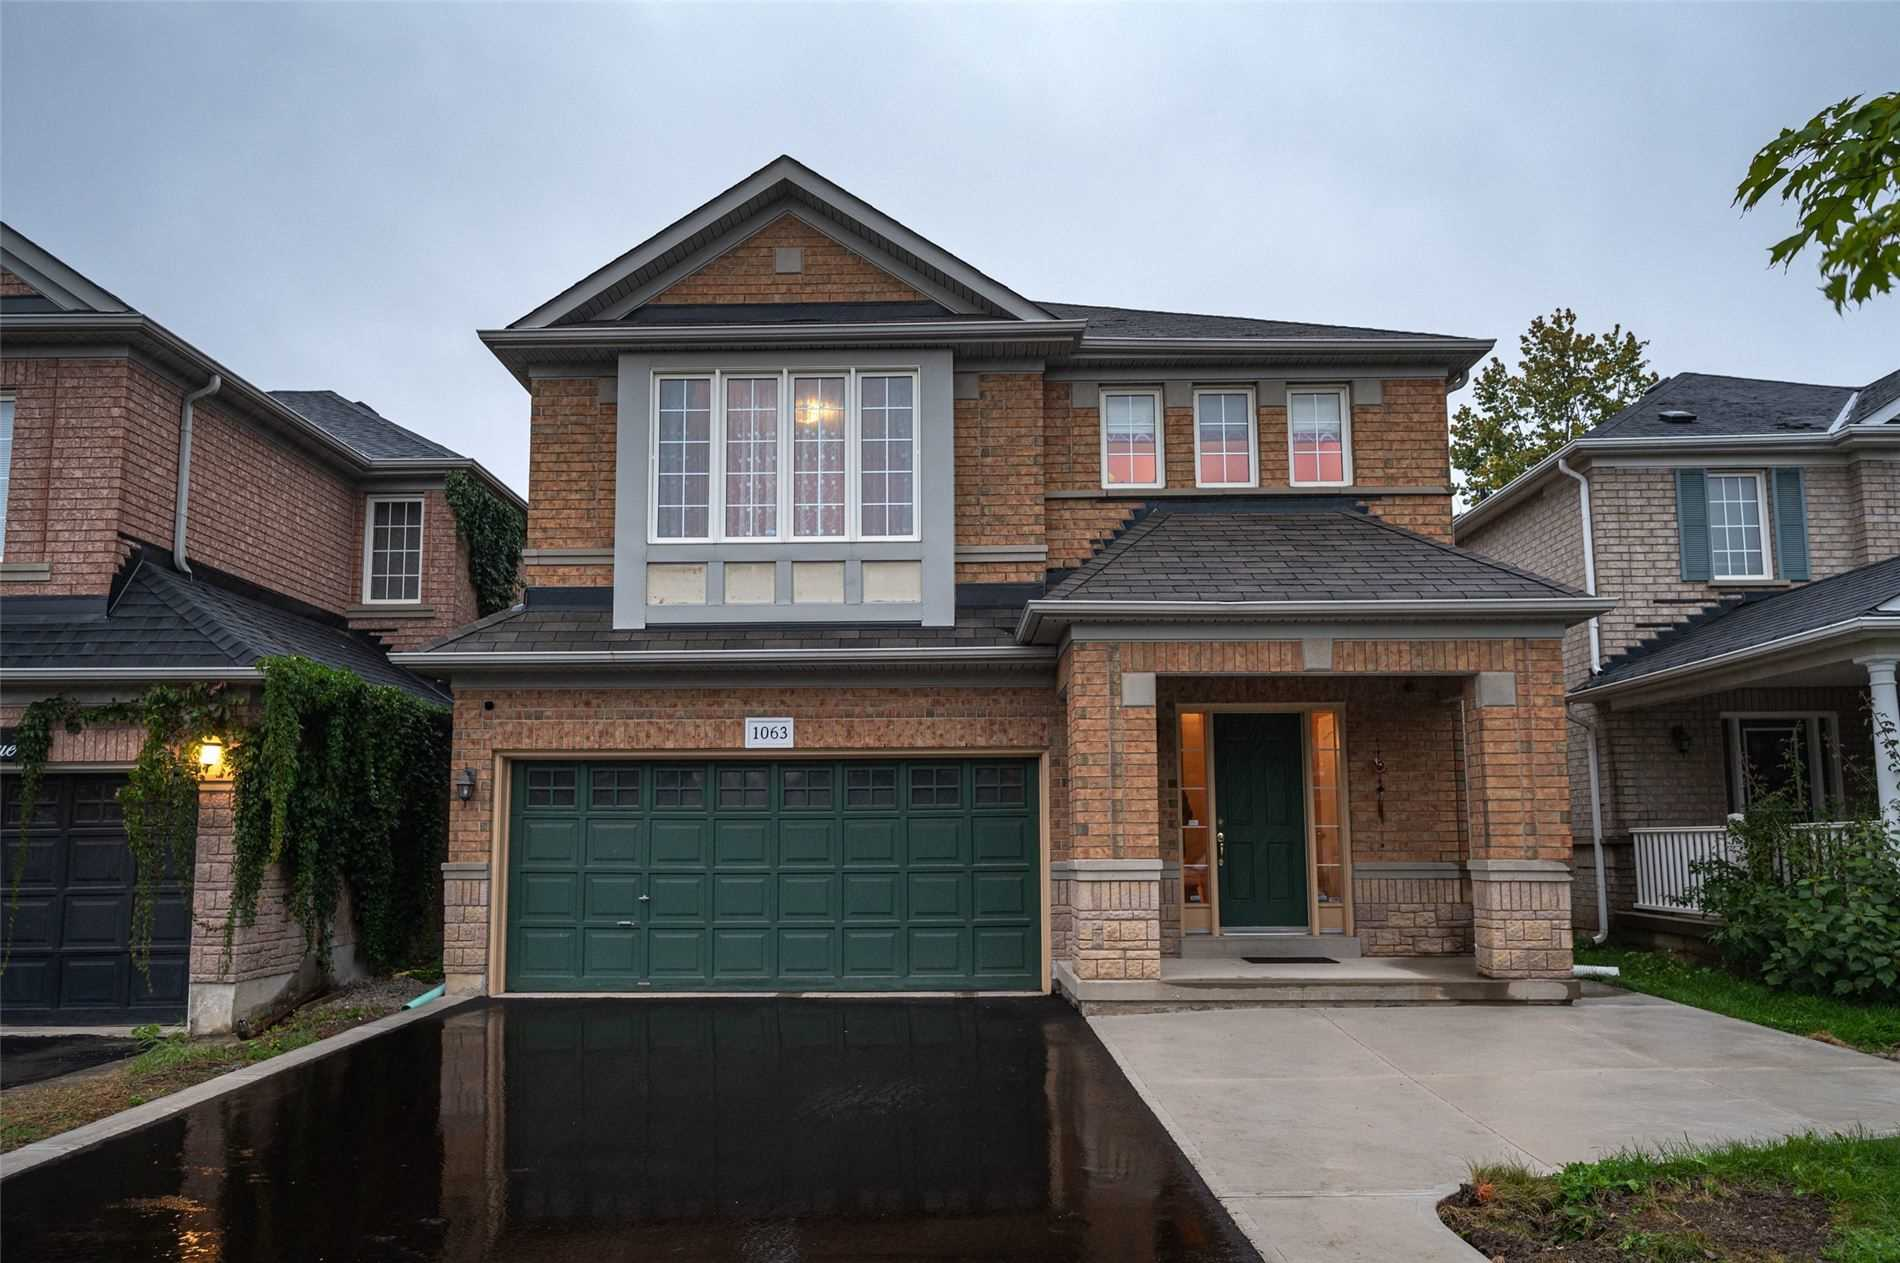 Detached house For Sale In Milton - 1063 Laurier Ave, Milton, Ontario, Canada L9T 6W7 , 4 Bedrooms Bedrooms, ,3 BathroomsBathrooms,Detached,For Sale,Laurier